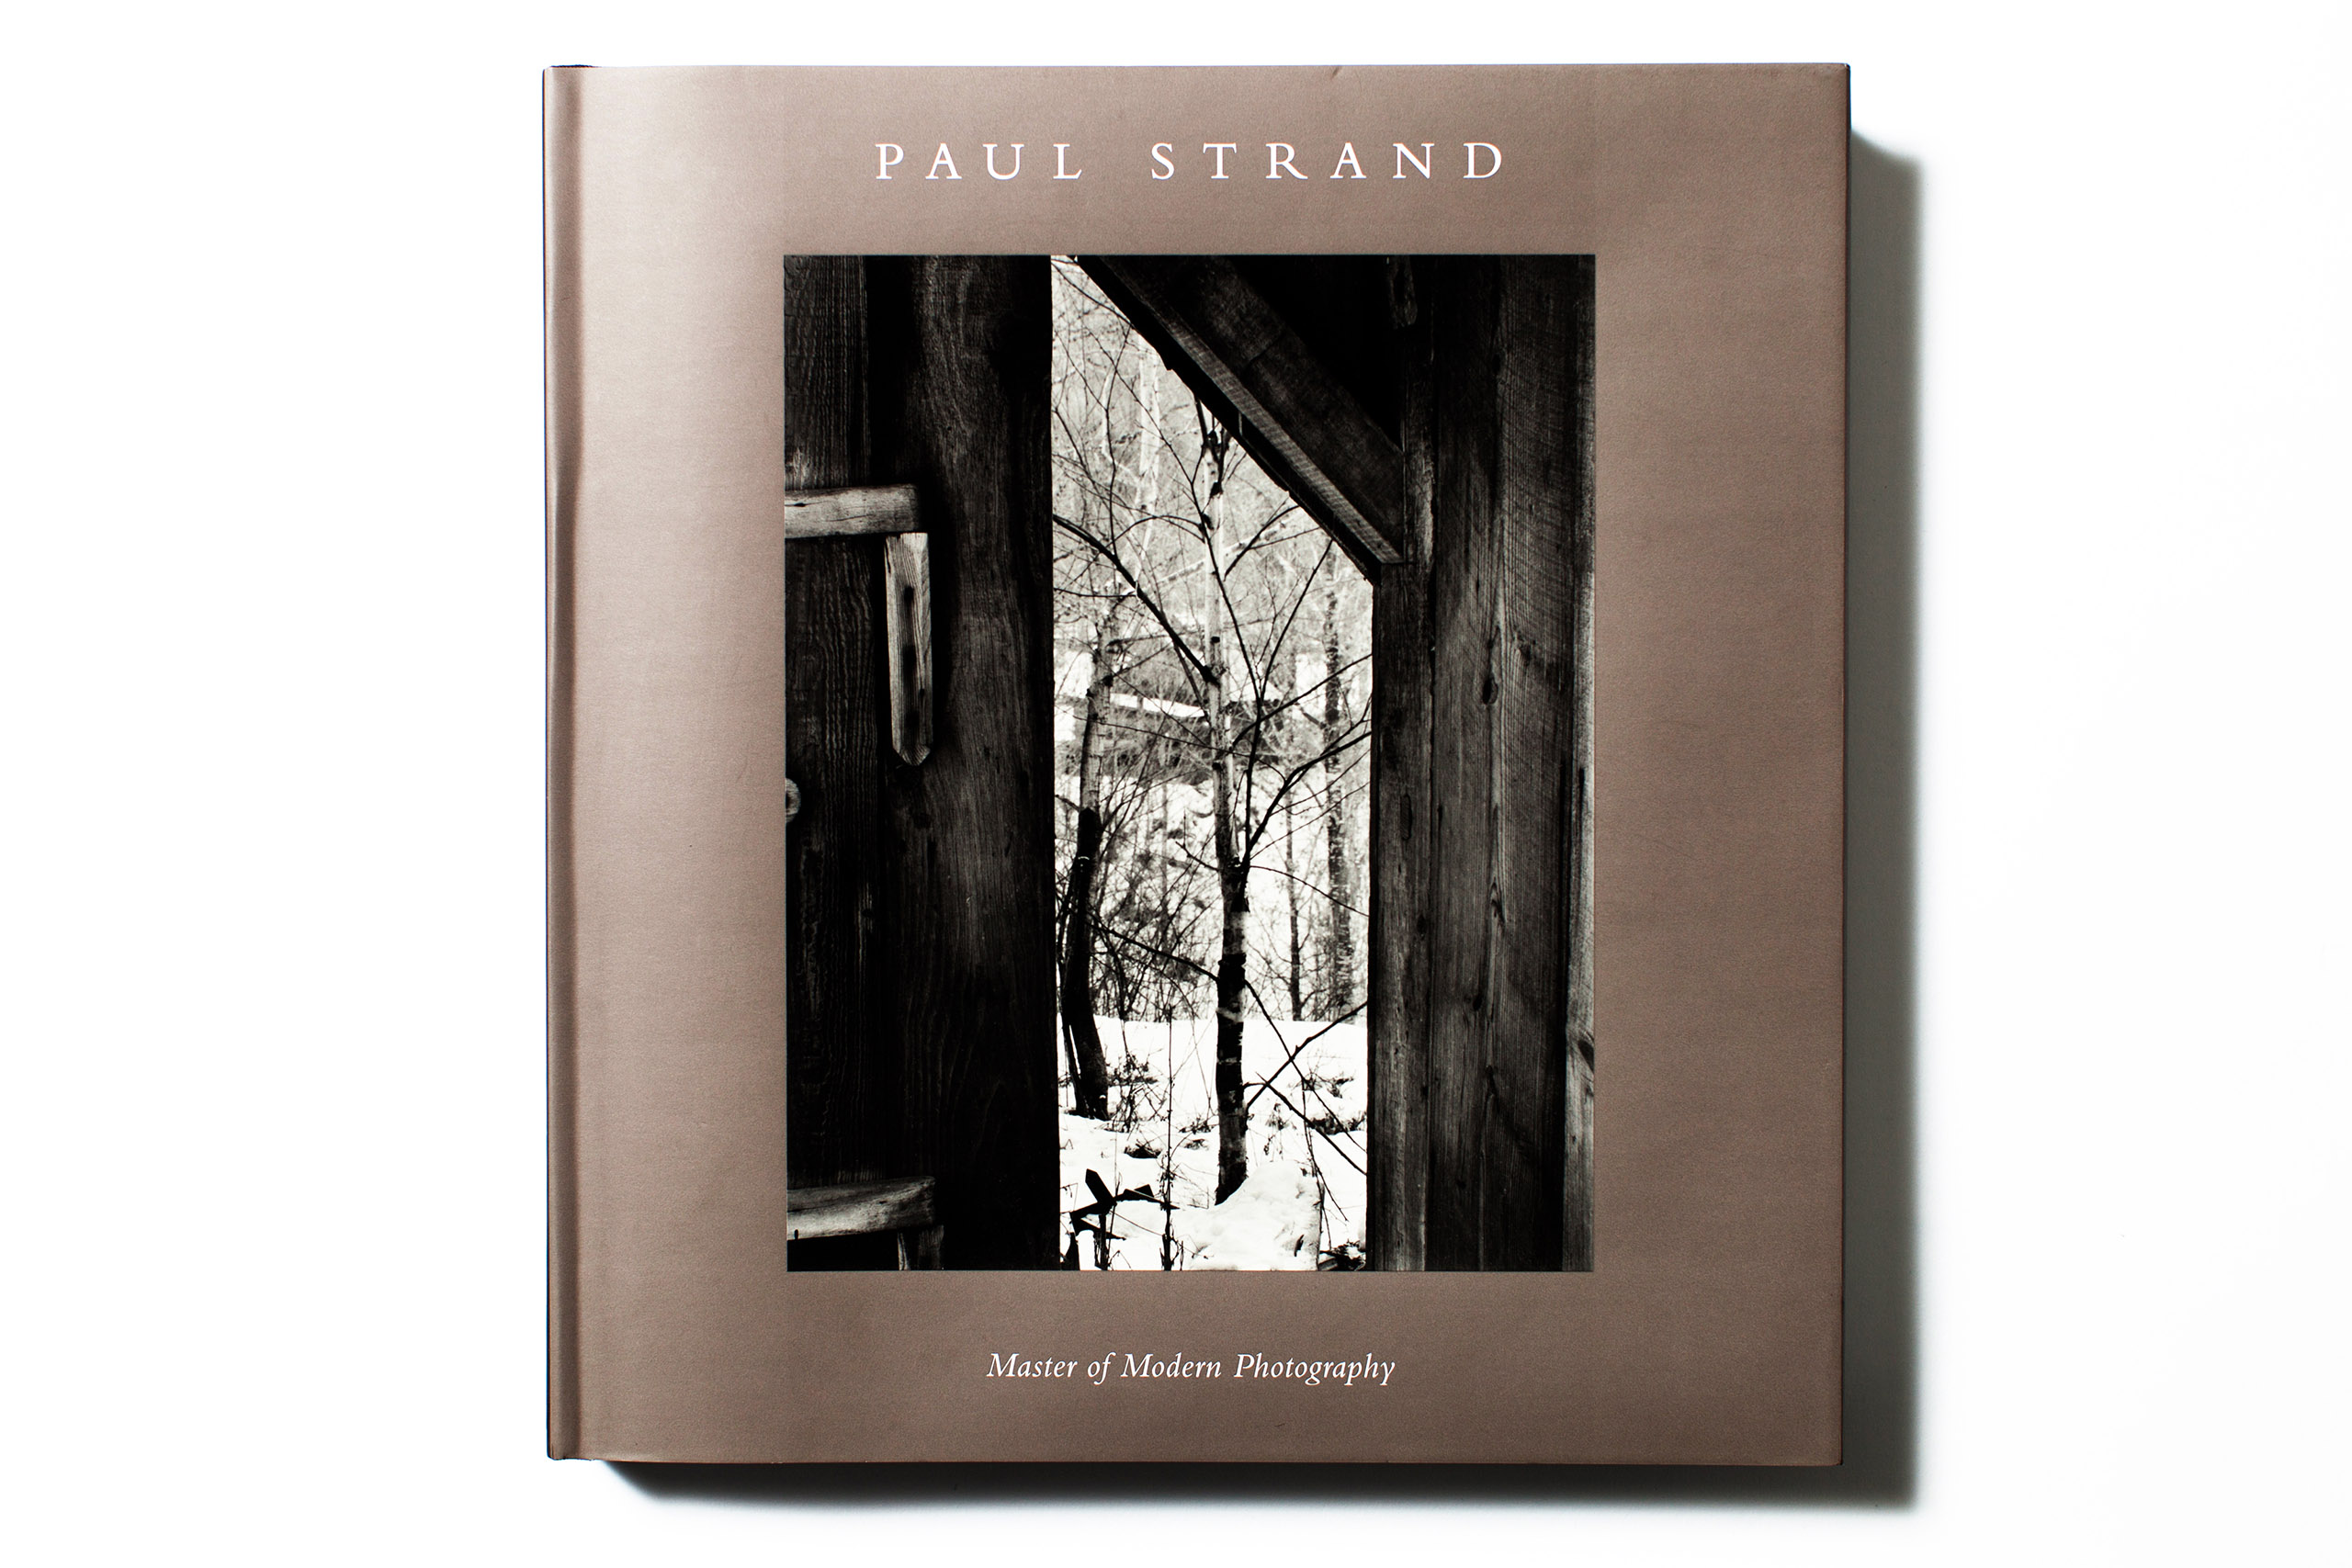 Paul Strand: Master of Modern Photography                                published by the Philadelphia Museum of Art, selected by Richard Conway, reporter and producer for TIME LightBox.